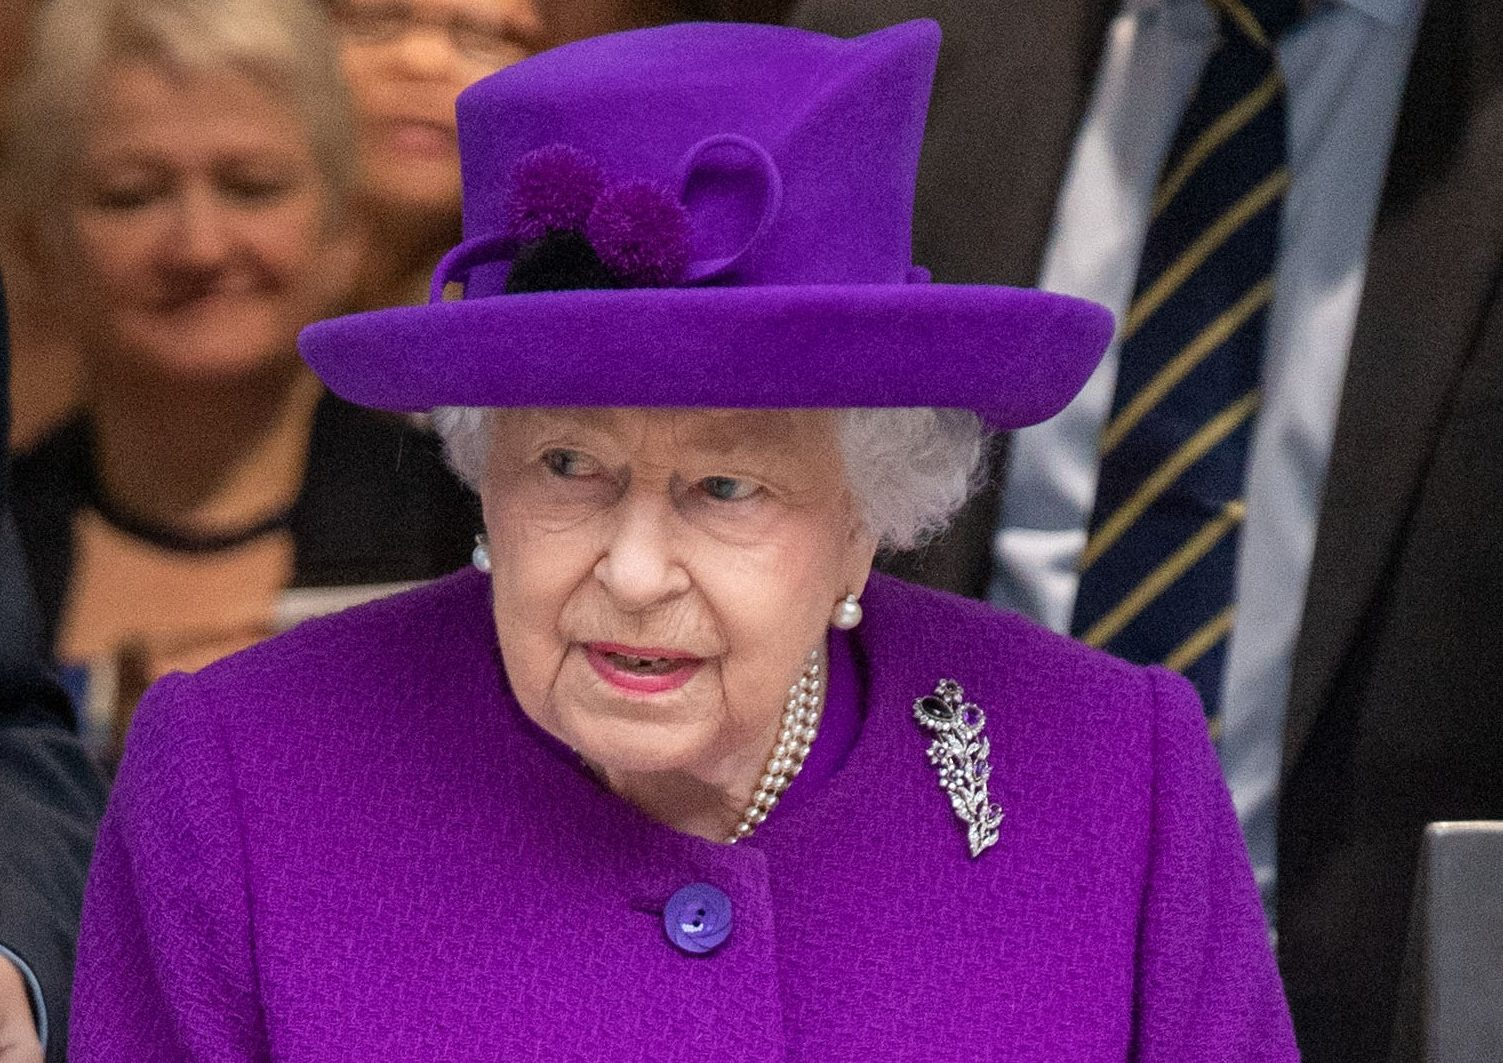 Coronavirus crisis: Queen to move to Windsor Castle over Easter